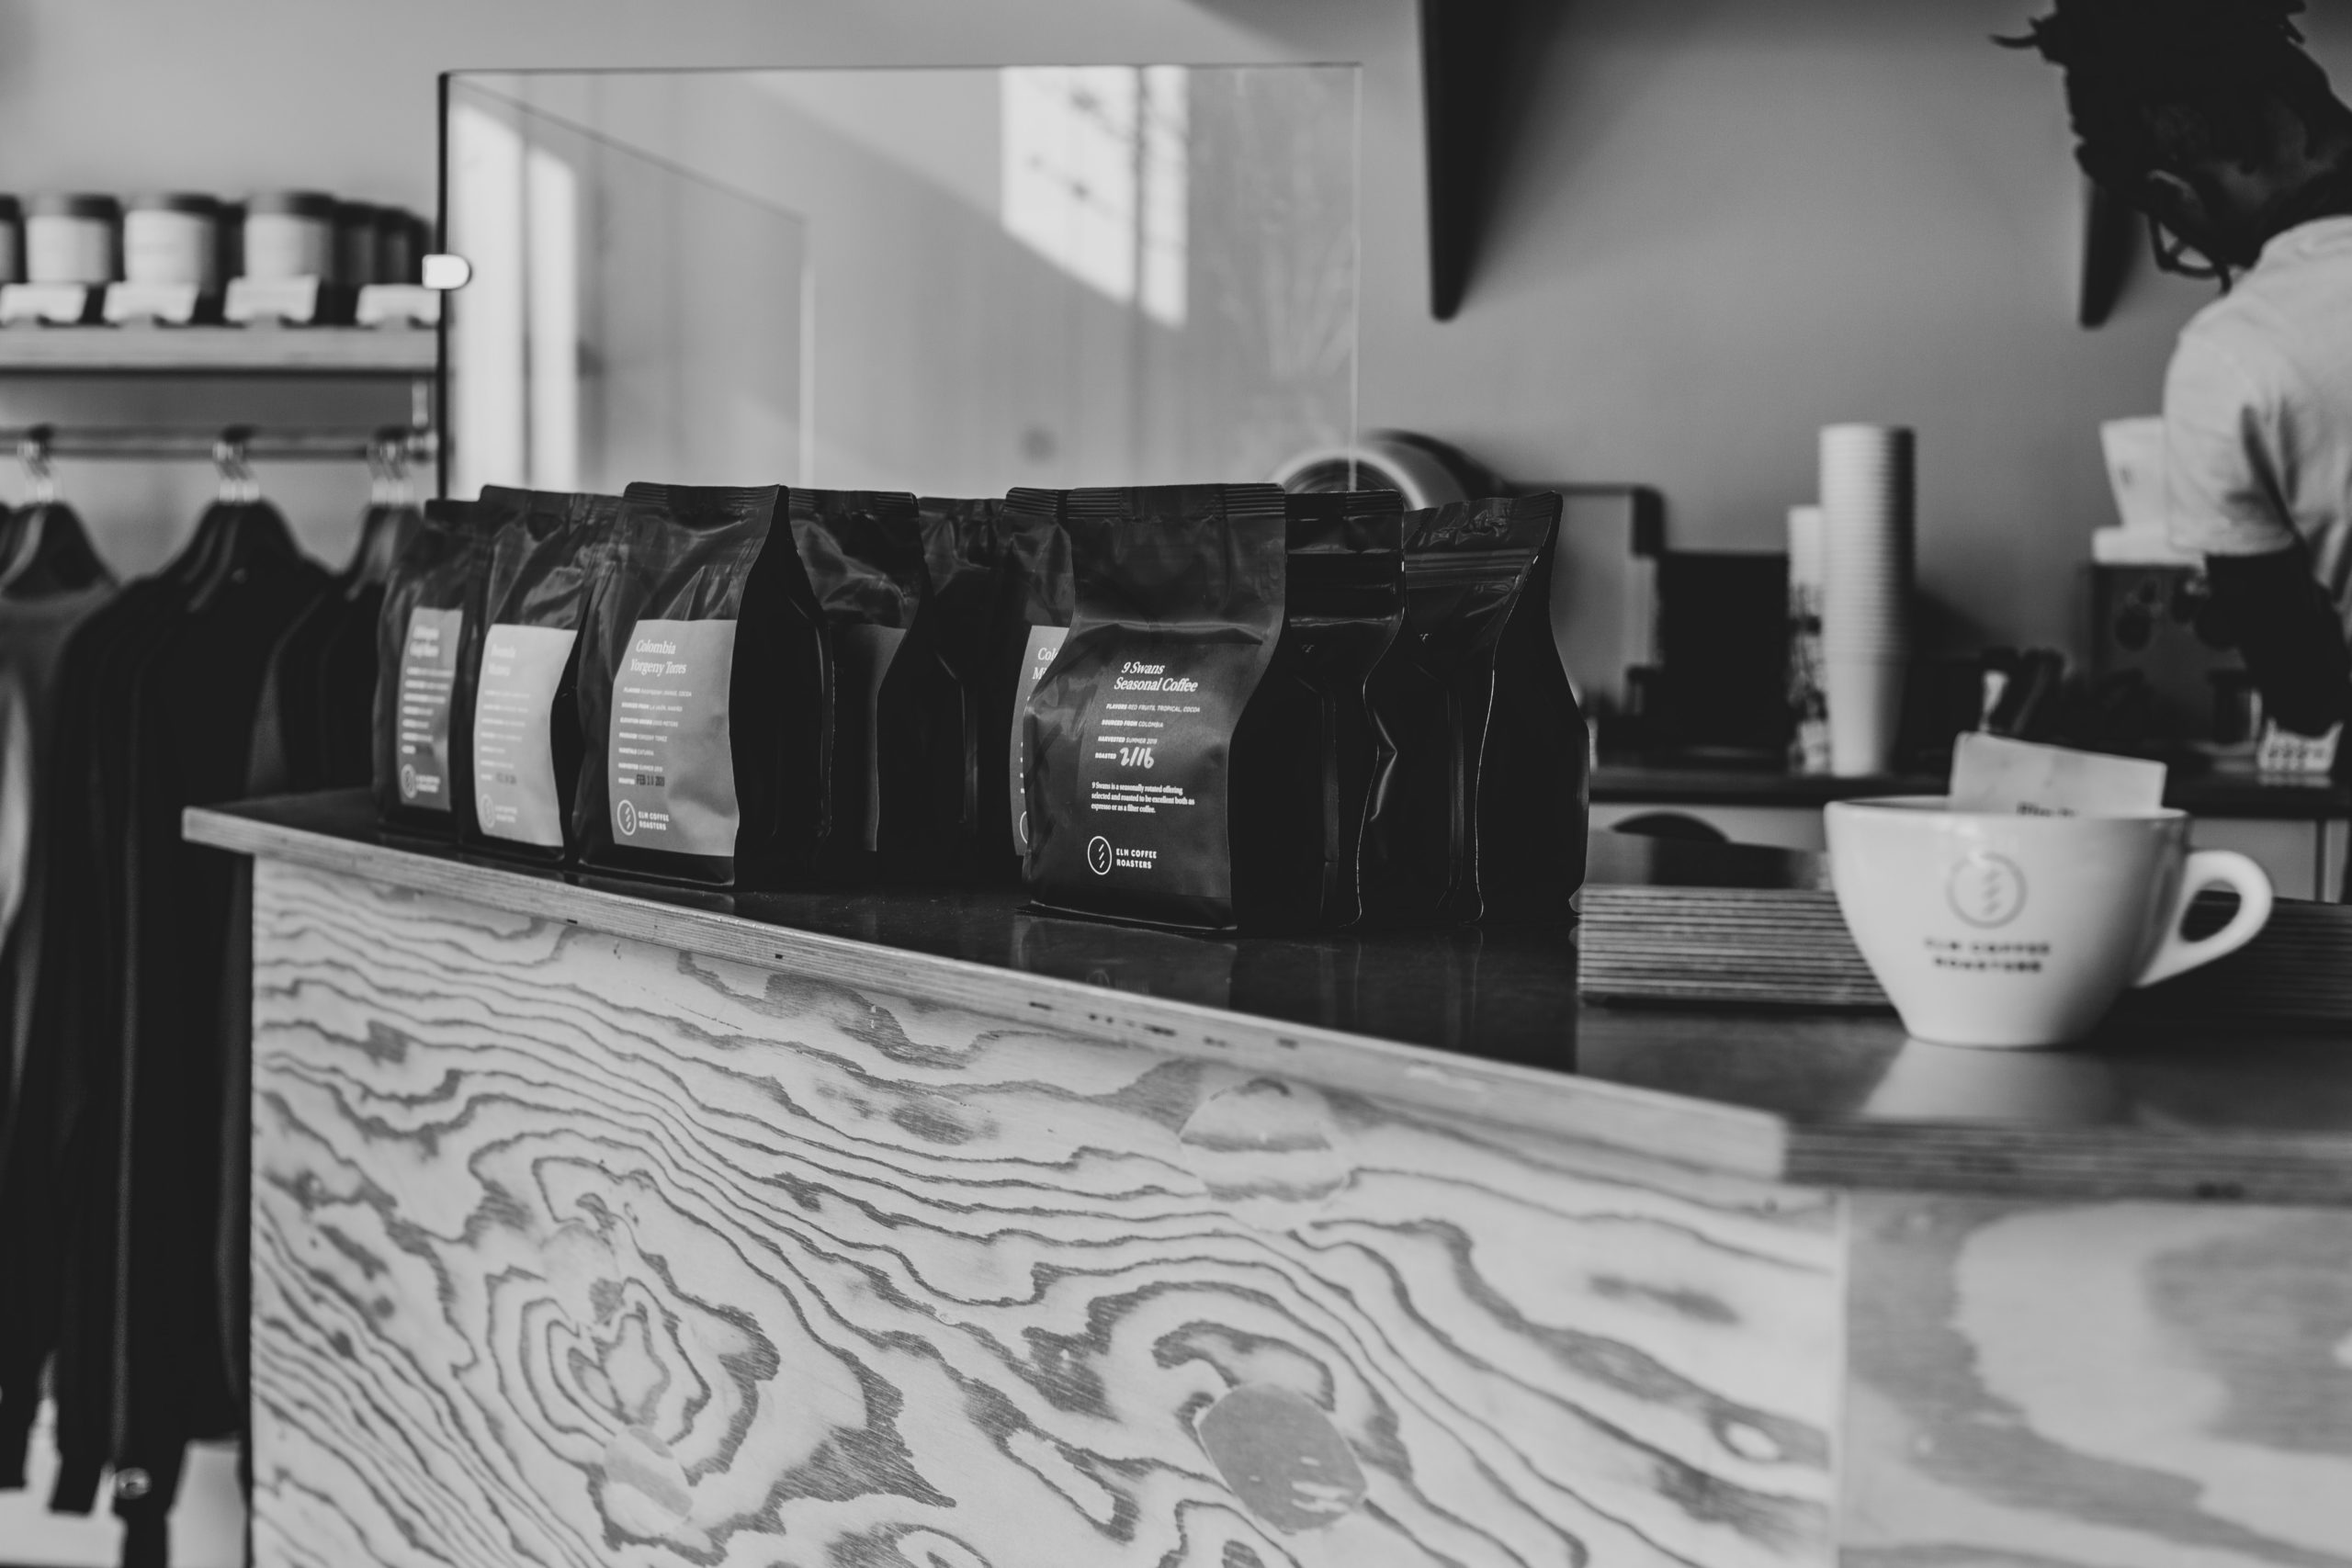 multiple bags of coffee bags on a counter